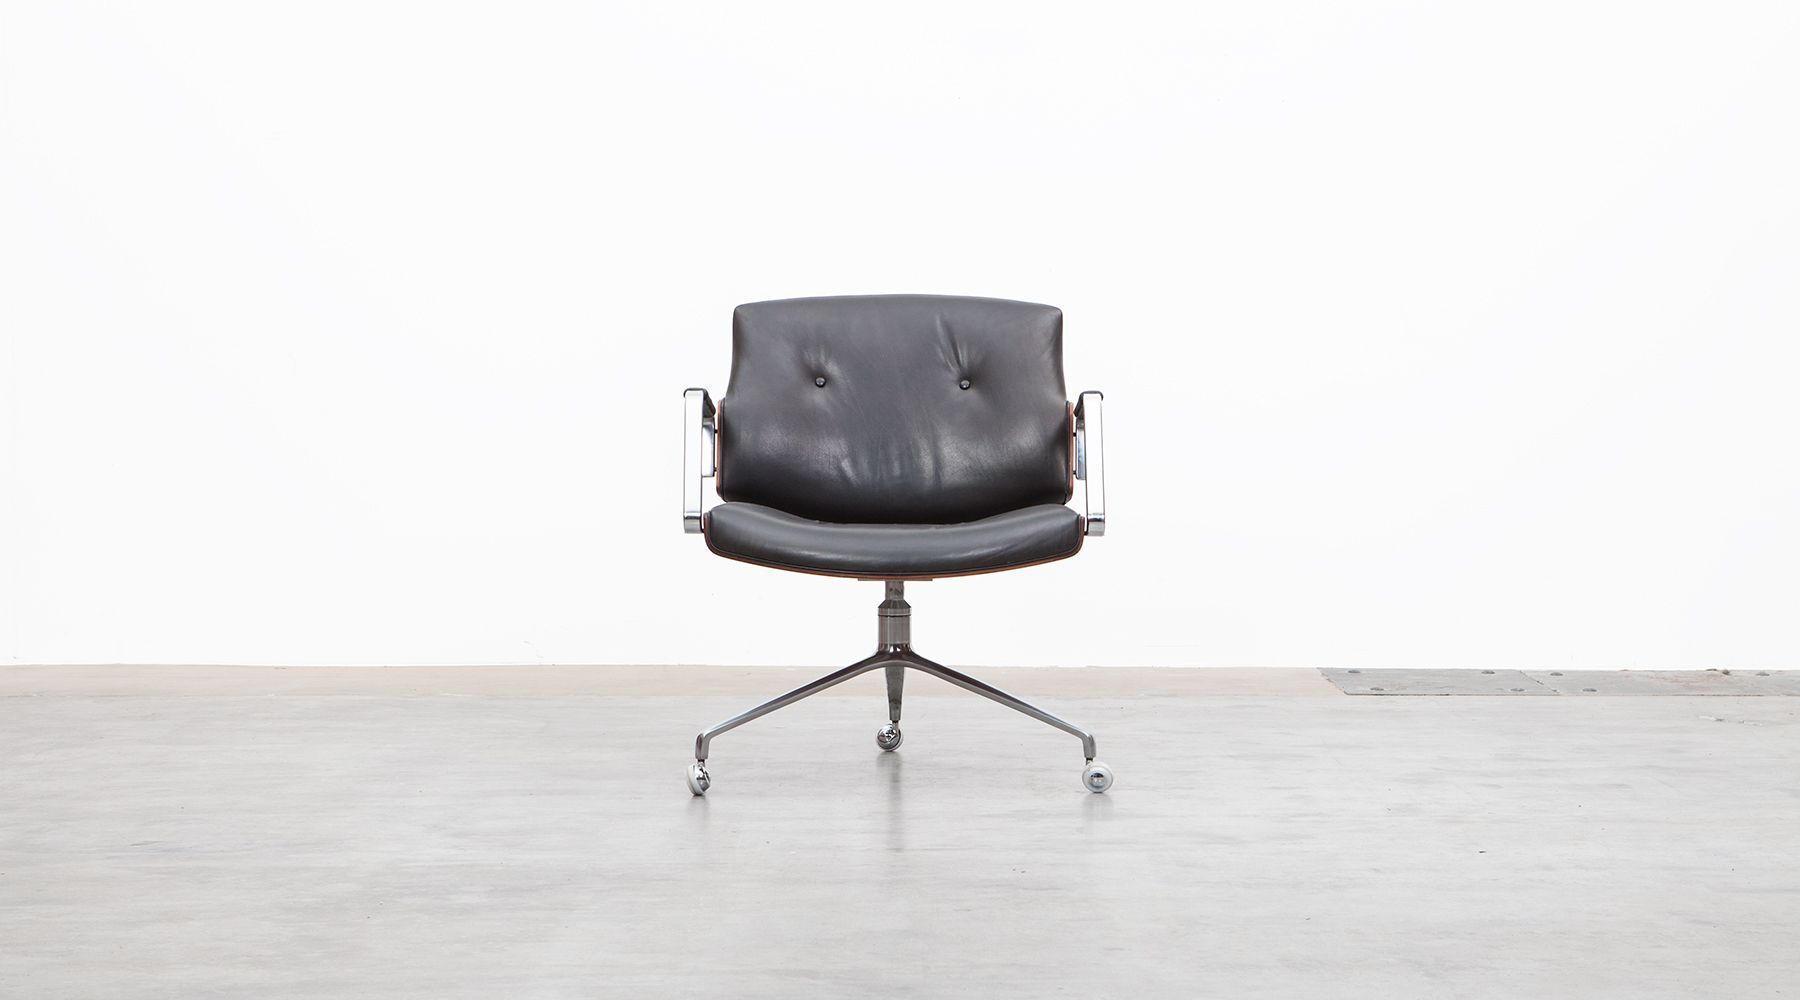 swivel chair (c)